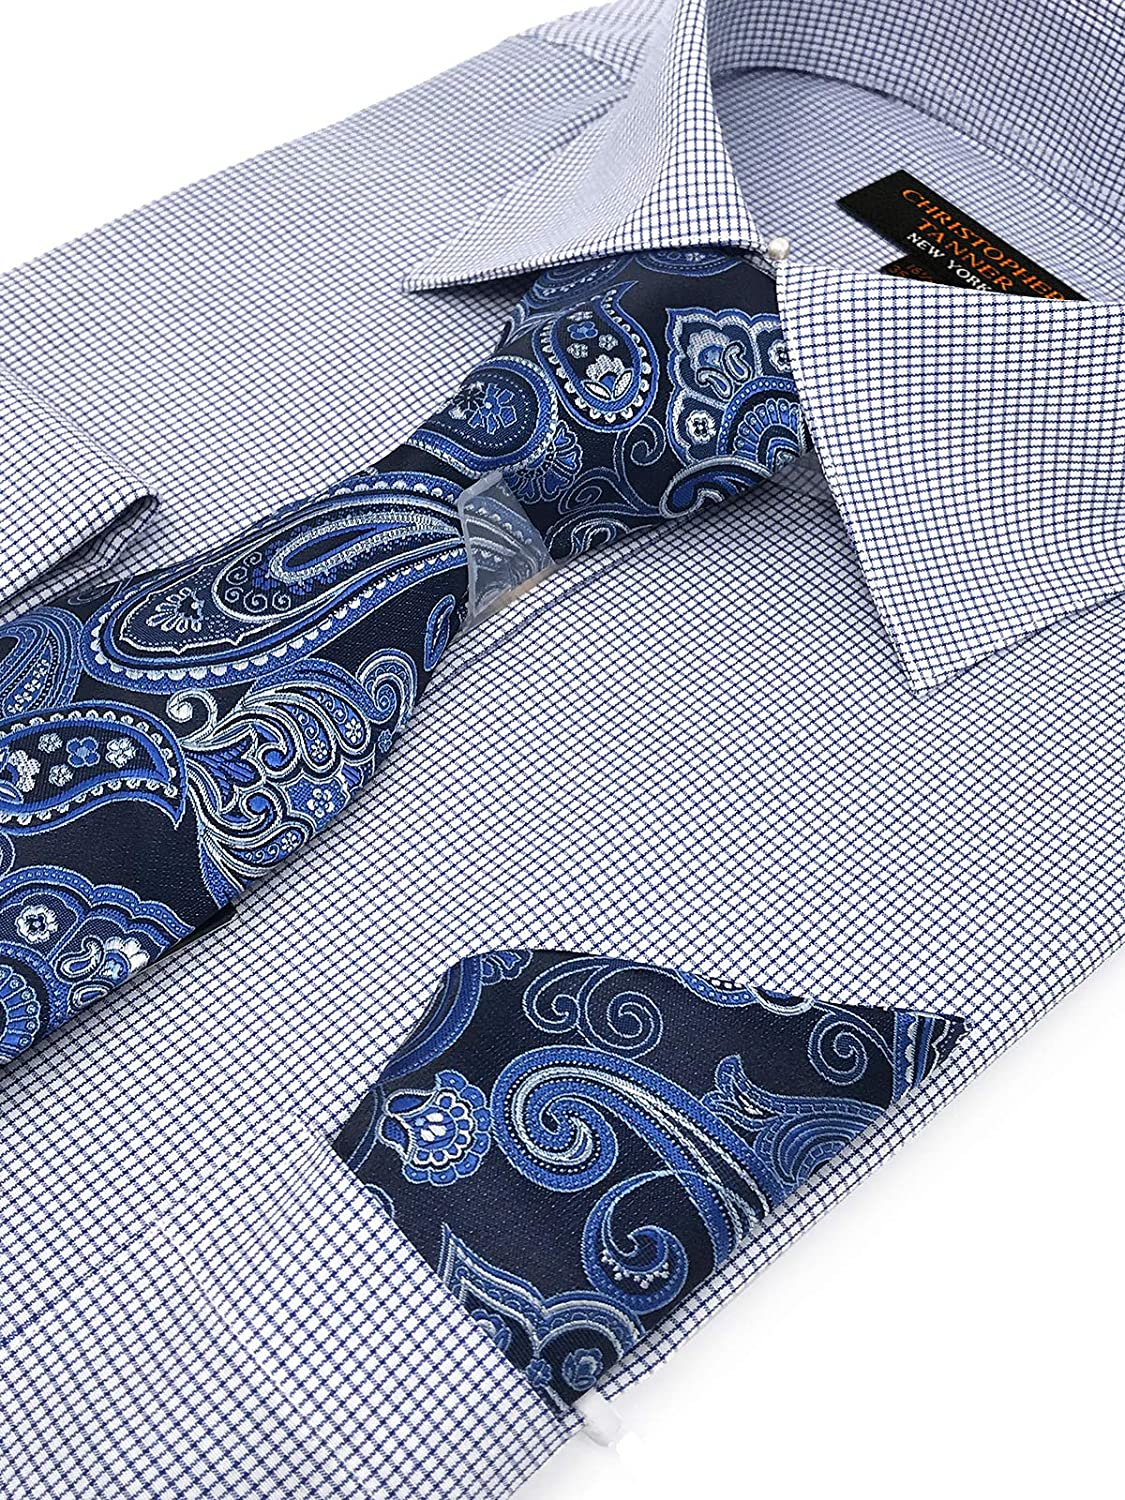 Christopher Tanner Mens Regular Fit Dress Shirts with Tie Hanky Cufflinks Set Combo French Cuffs Checks Plaid Pattern